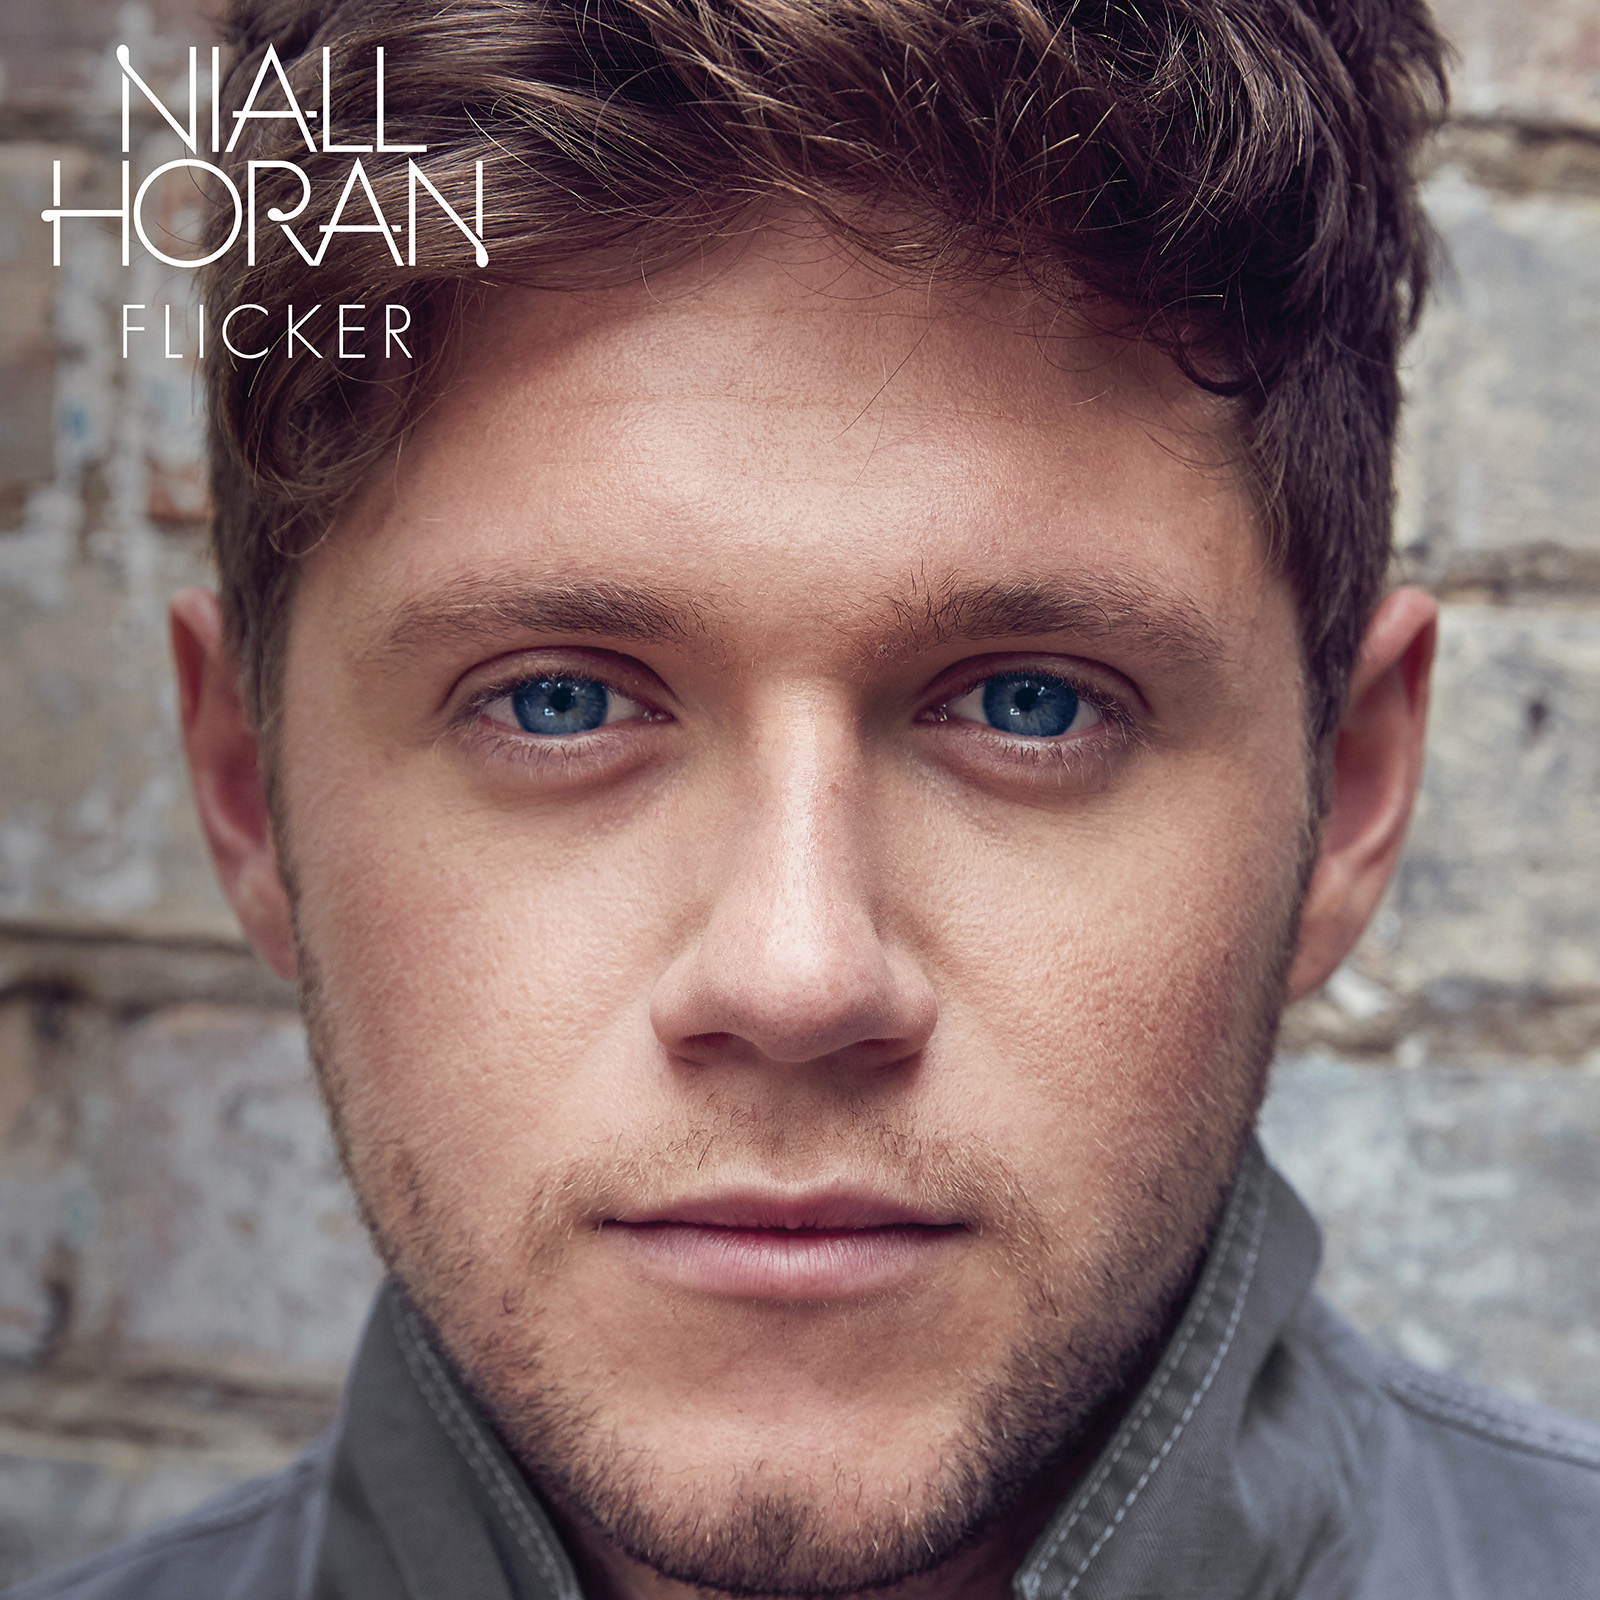 NIALL HORAN FLICKER ALBUM COVER